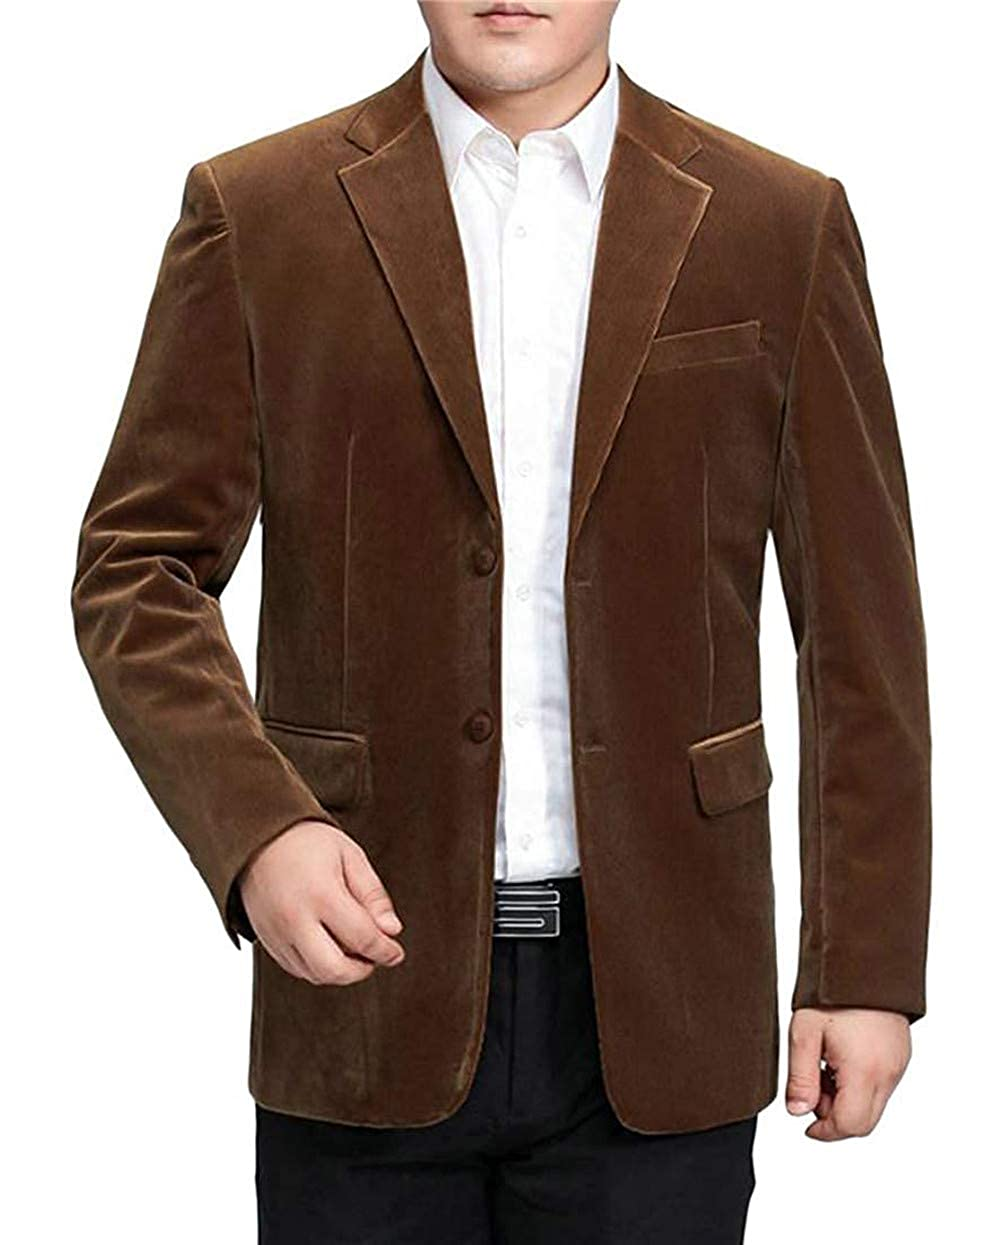 Mens Solid Color Two Button Corduroy Tailored Collar Coat Blazer Jacket